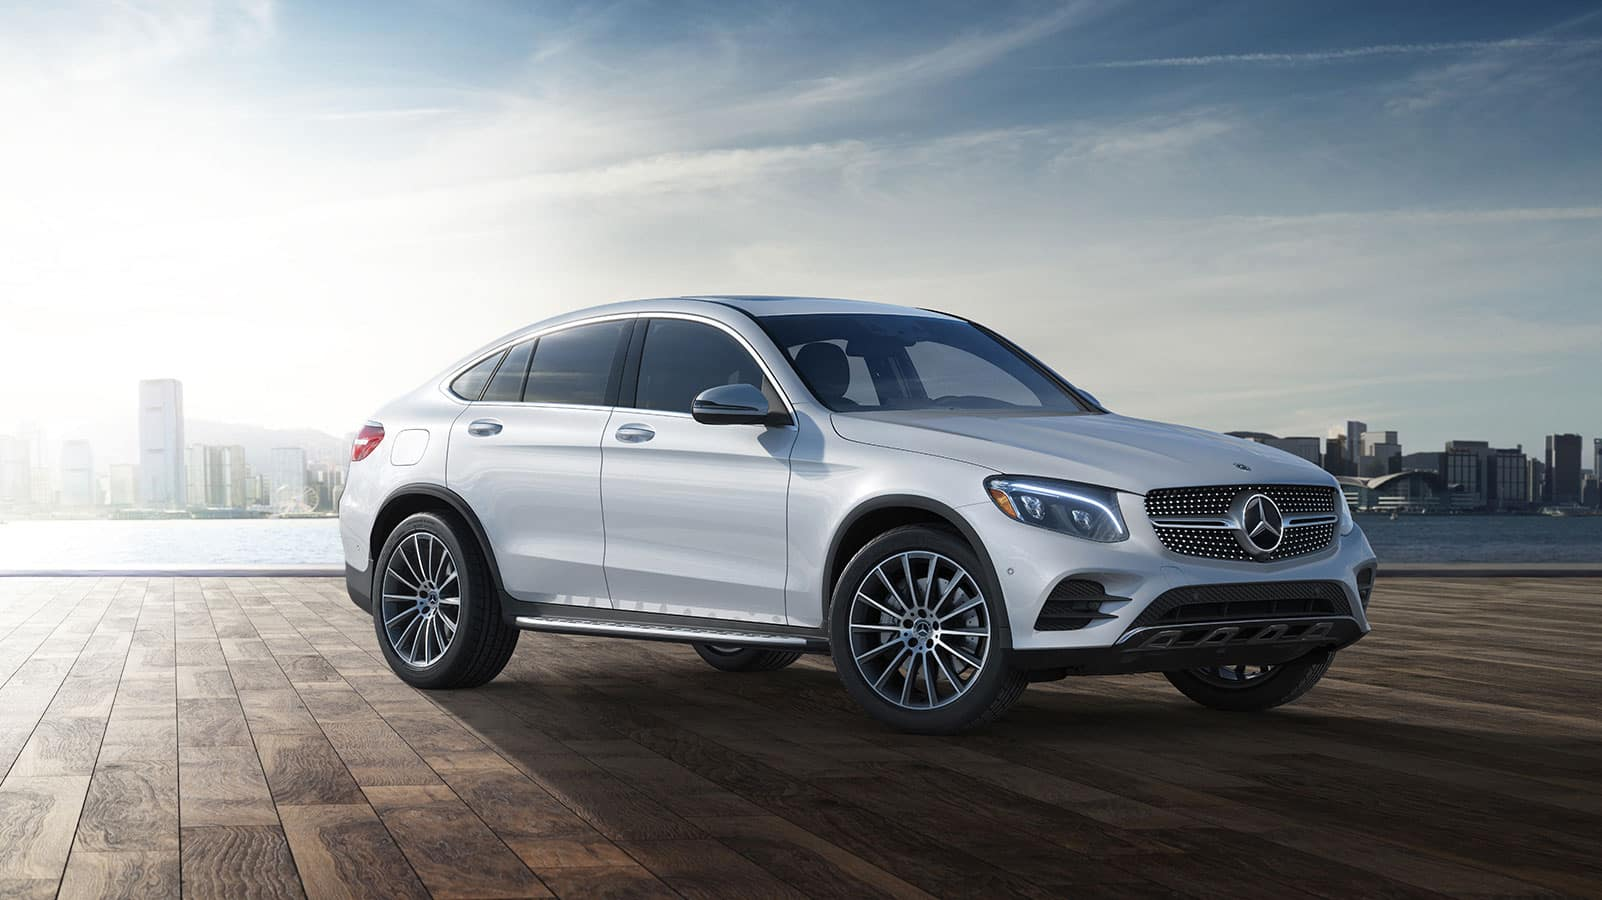 2019 Mercedes-Benz GLC Coupe